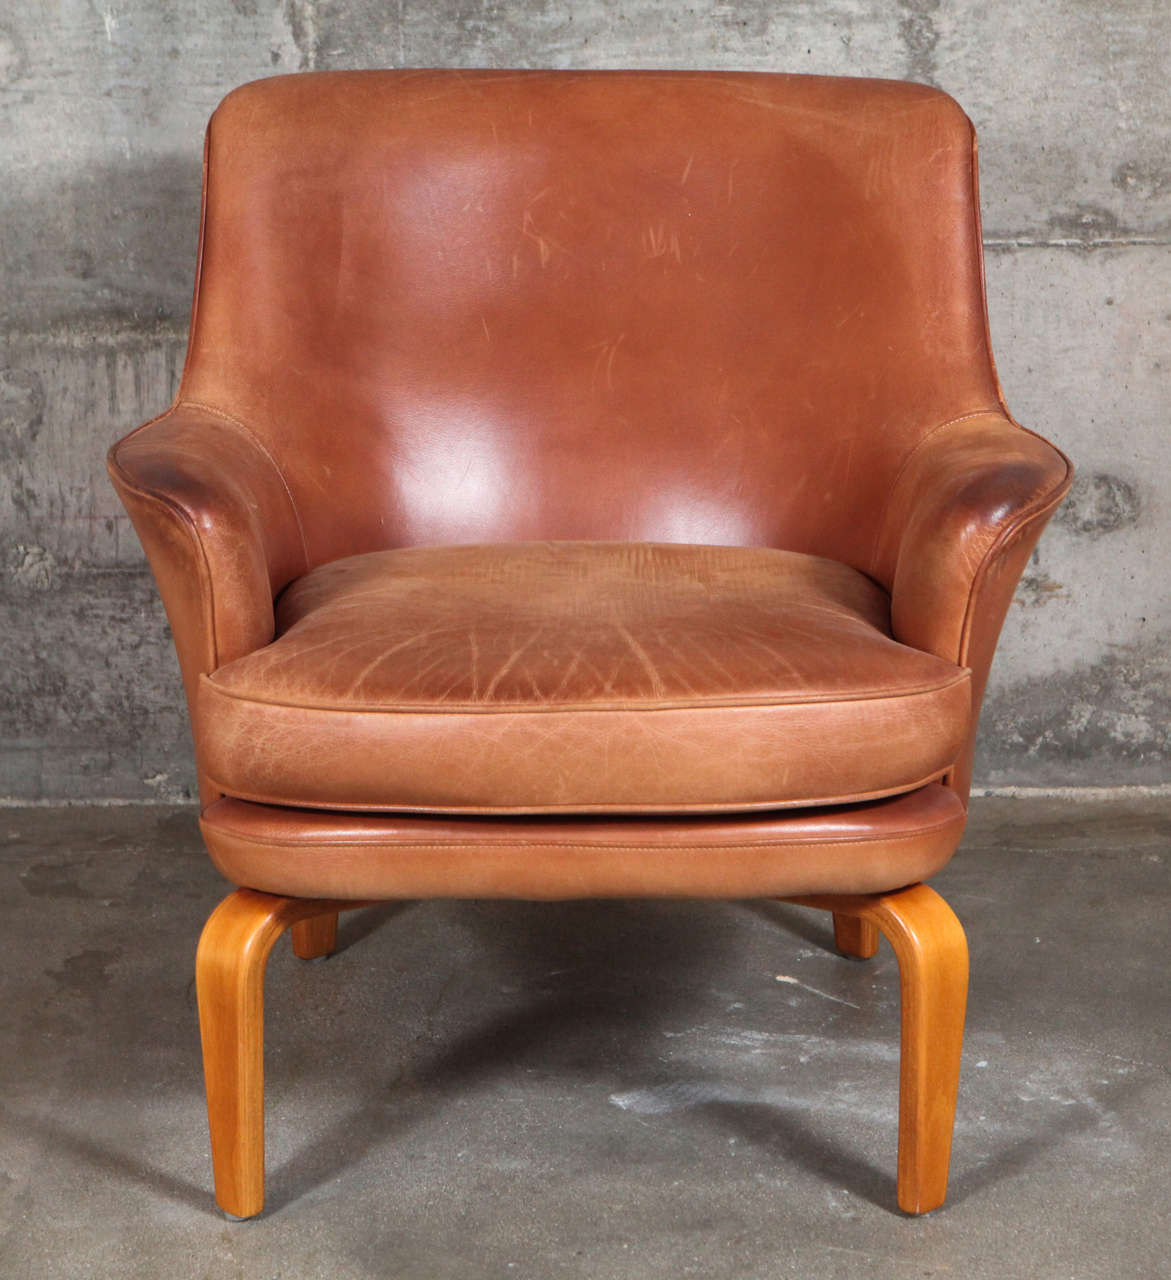 Swedish Pair of Arne Norell 'Pilot' Lounge Chairs